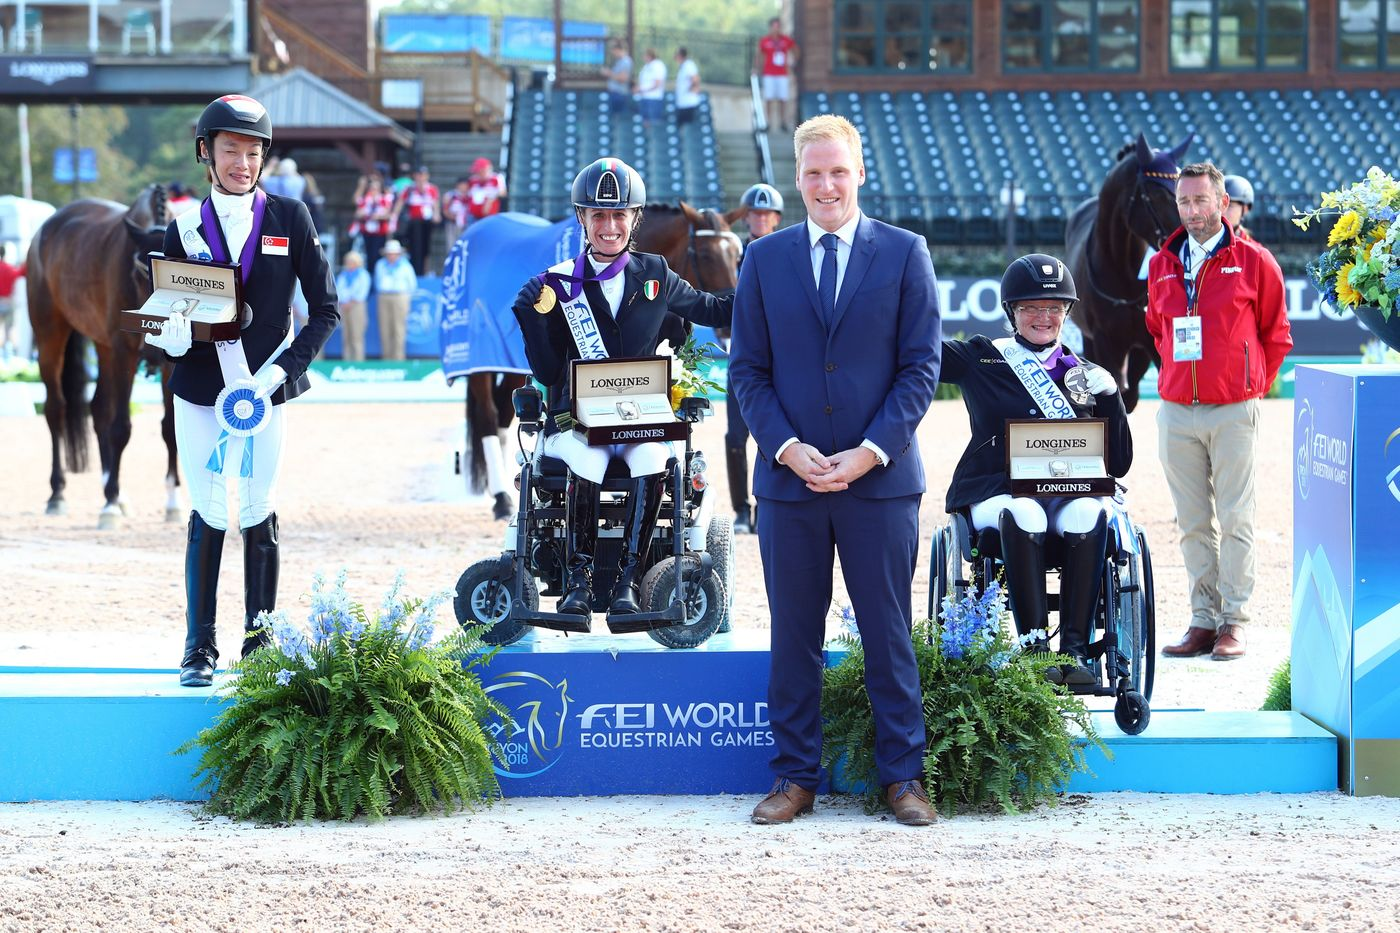 Longines Show Jumping Event: The FEI World Equestrian Games ended beautifully with Germany topping the medal table   17